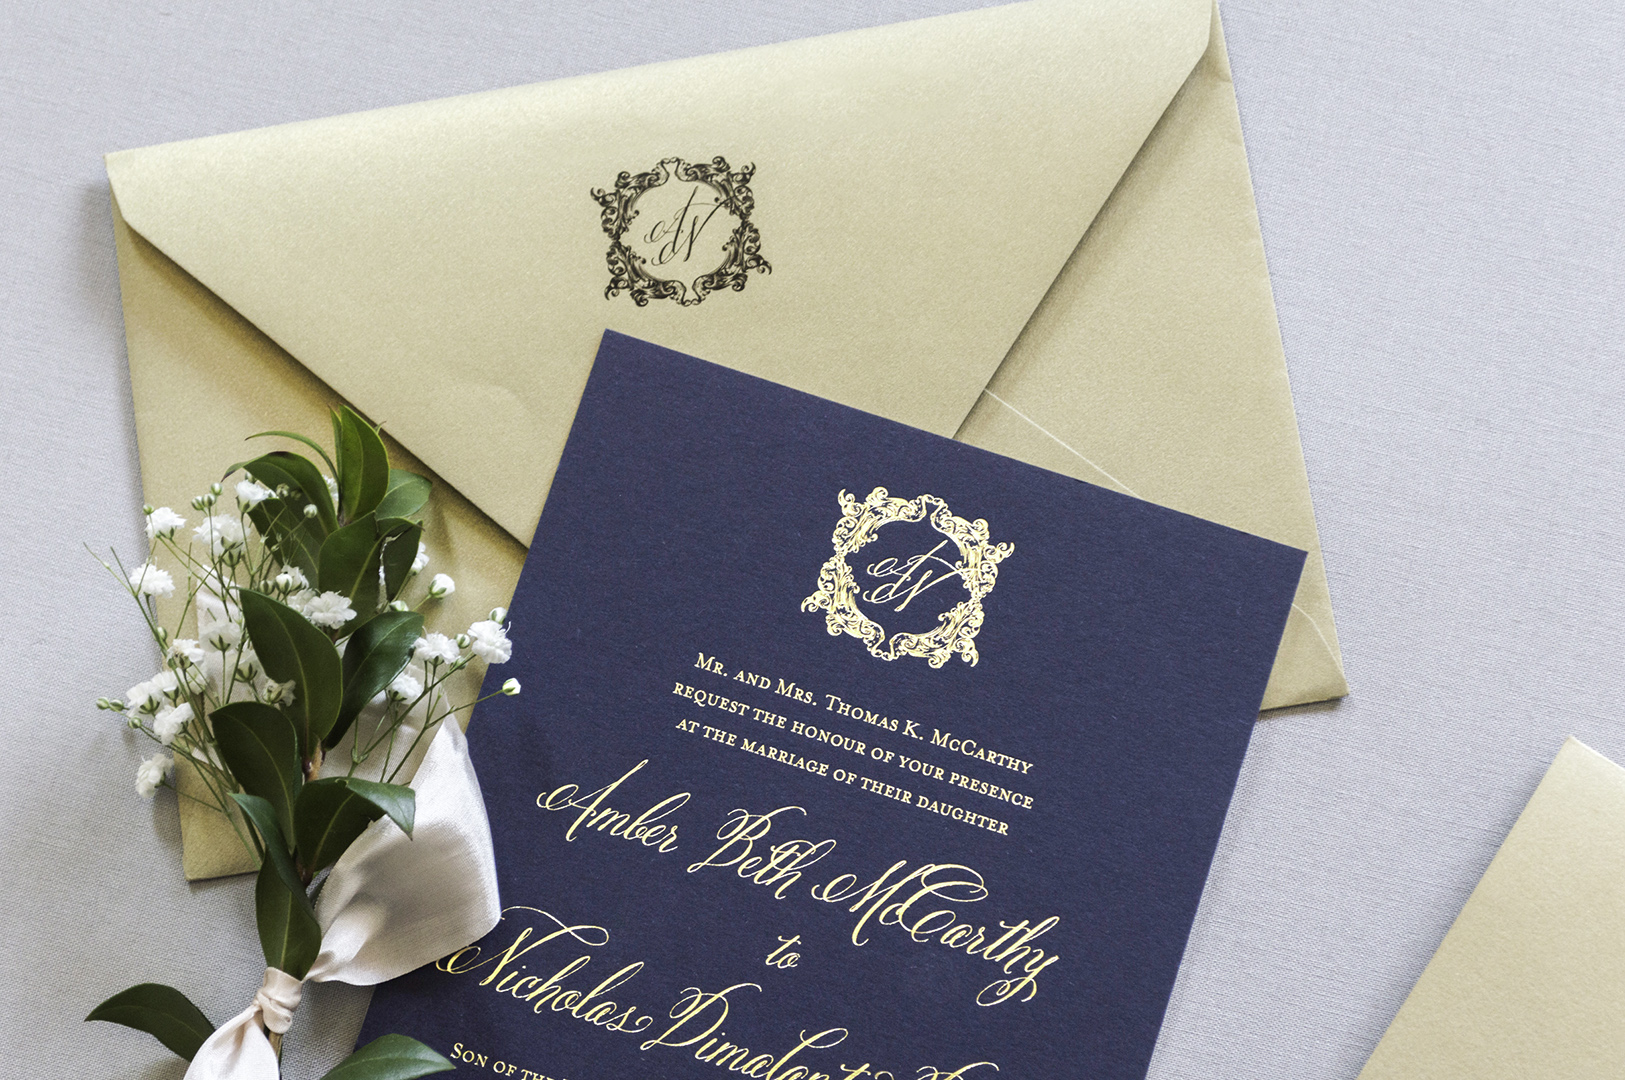 Elegant Monogram Wedding Invitations: Traditional, Elegant Monogram Crest Wedding Invitations